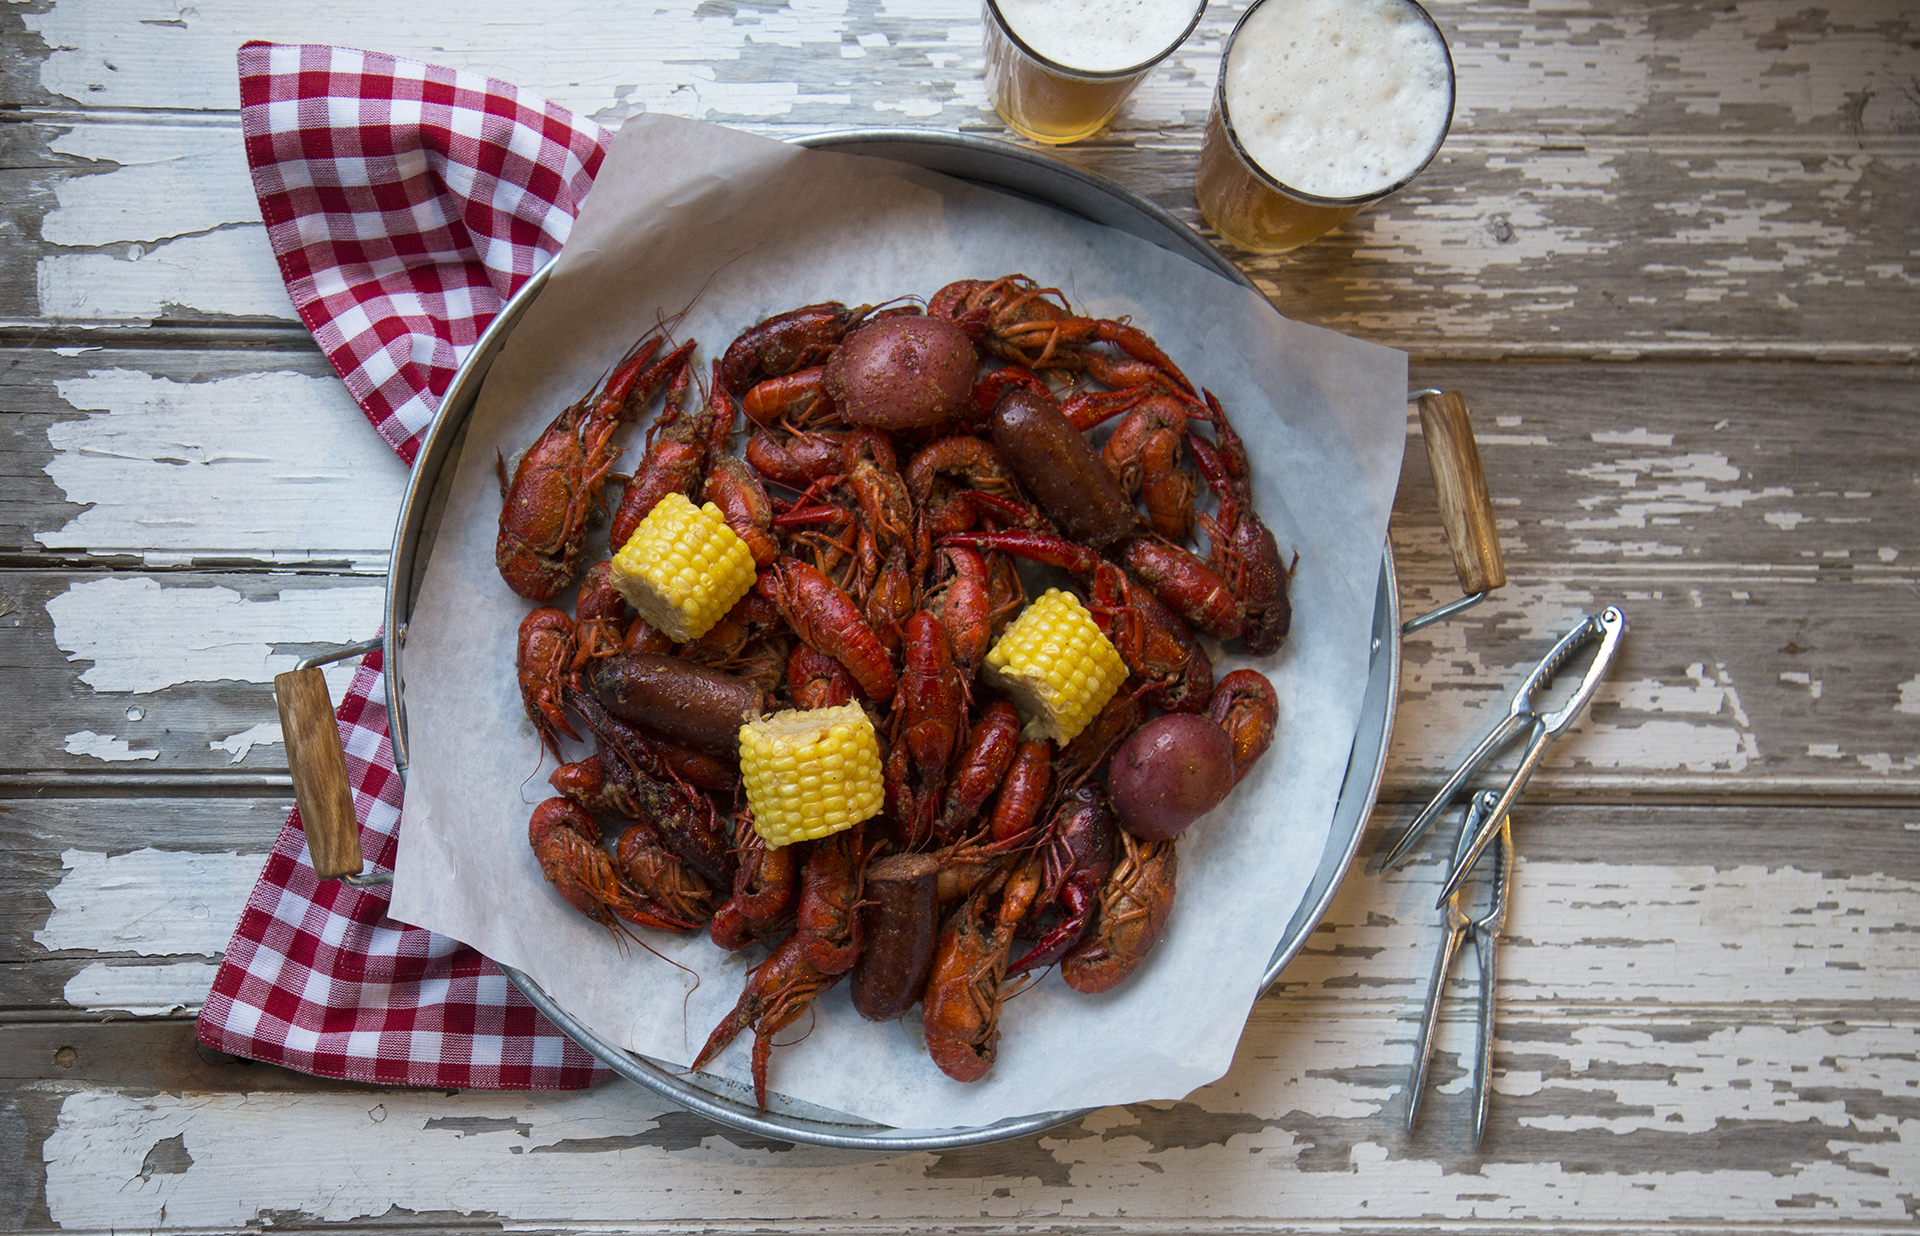 Crawfish boillowres